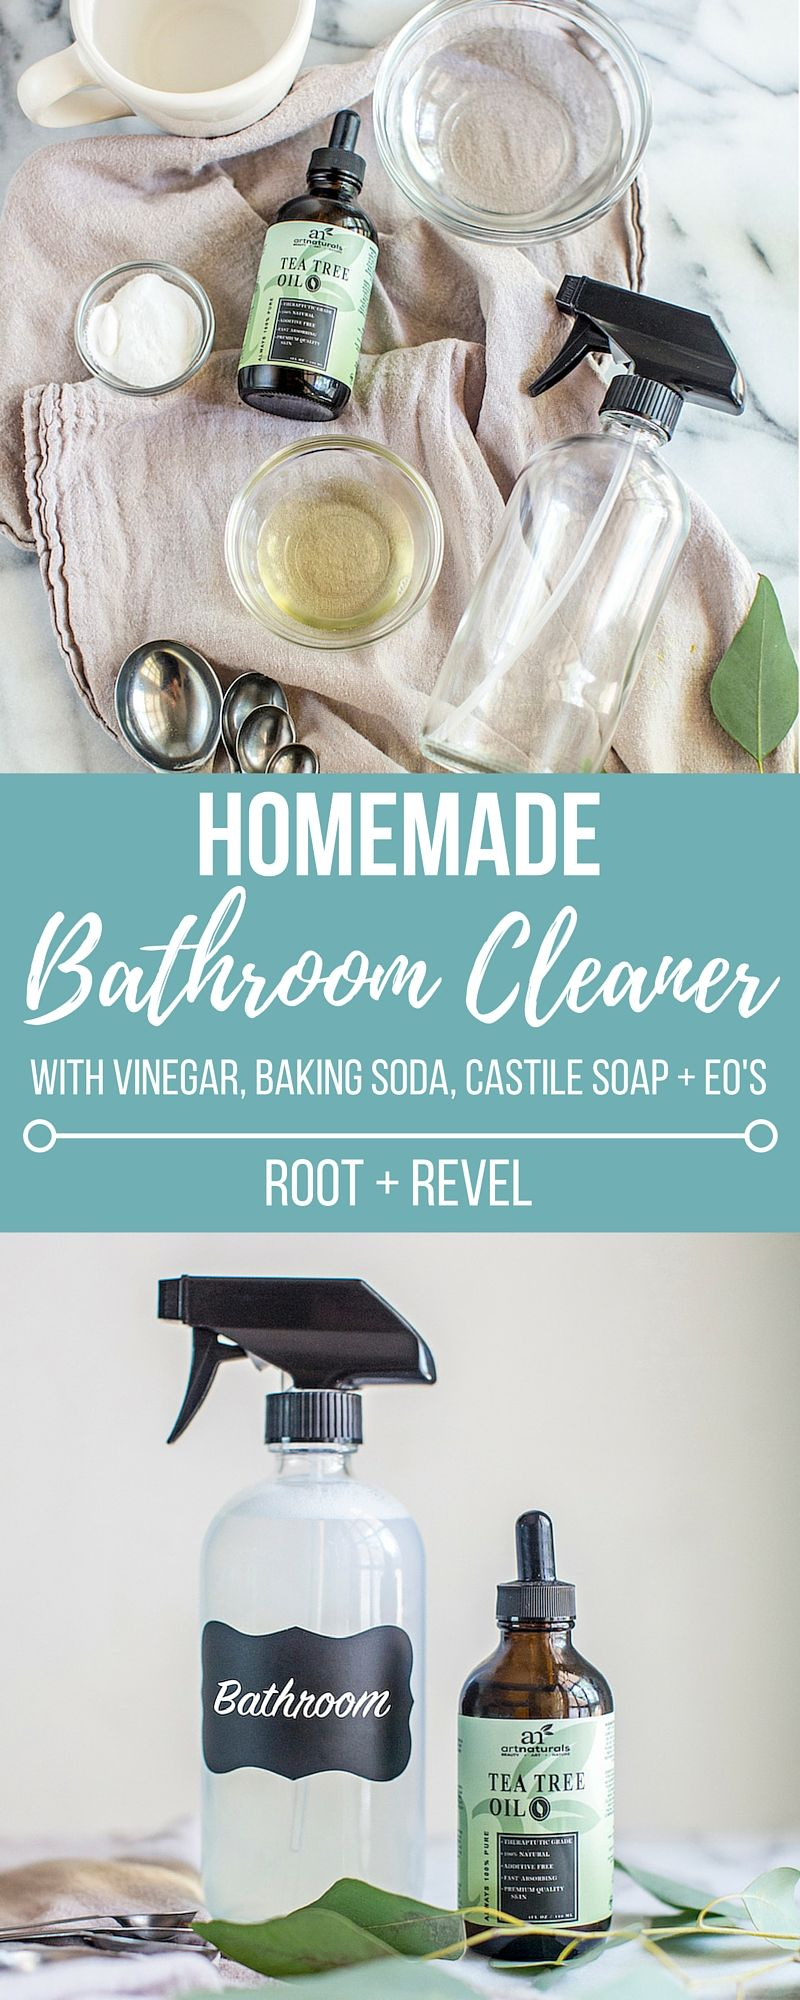 Homemade Bathroom Cleaner | Recipe | Homemade bathroom ...